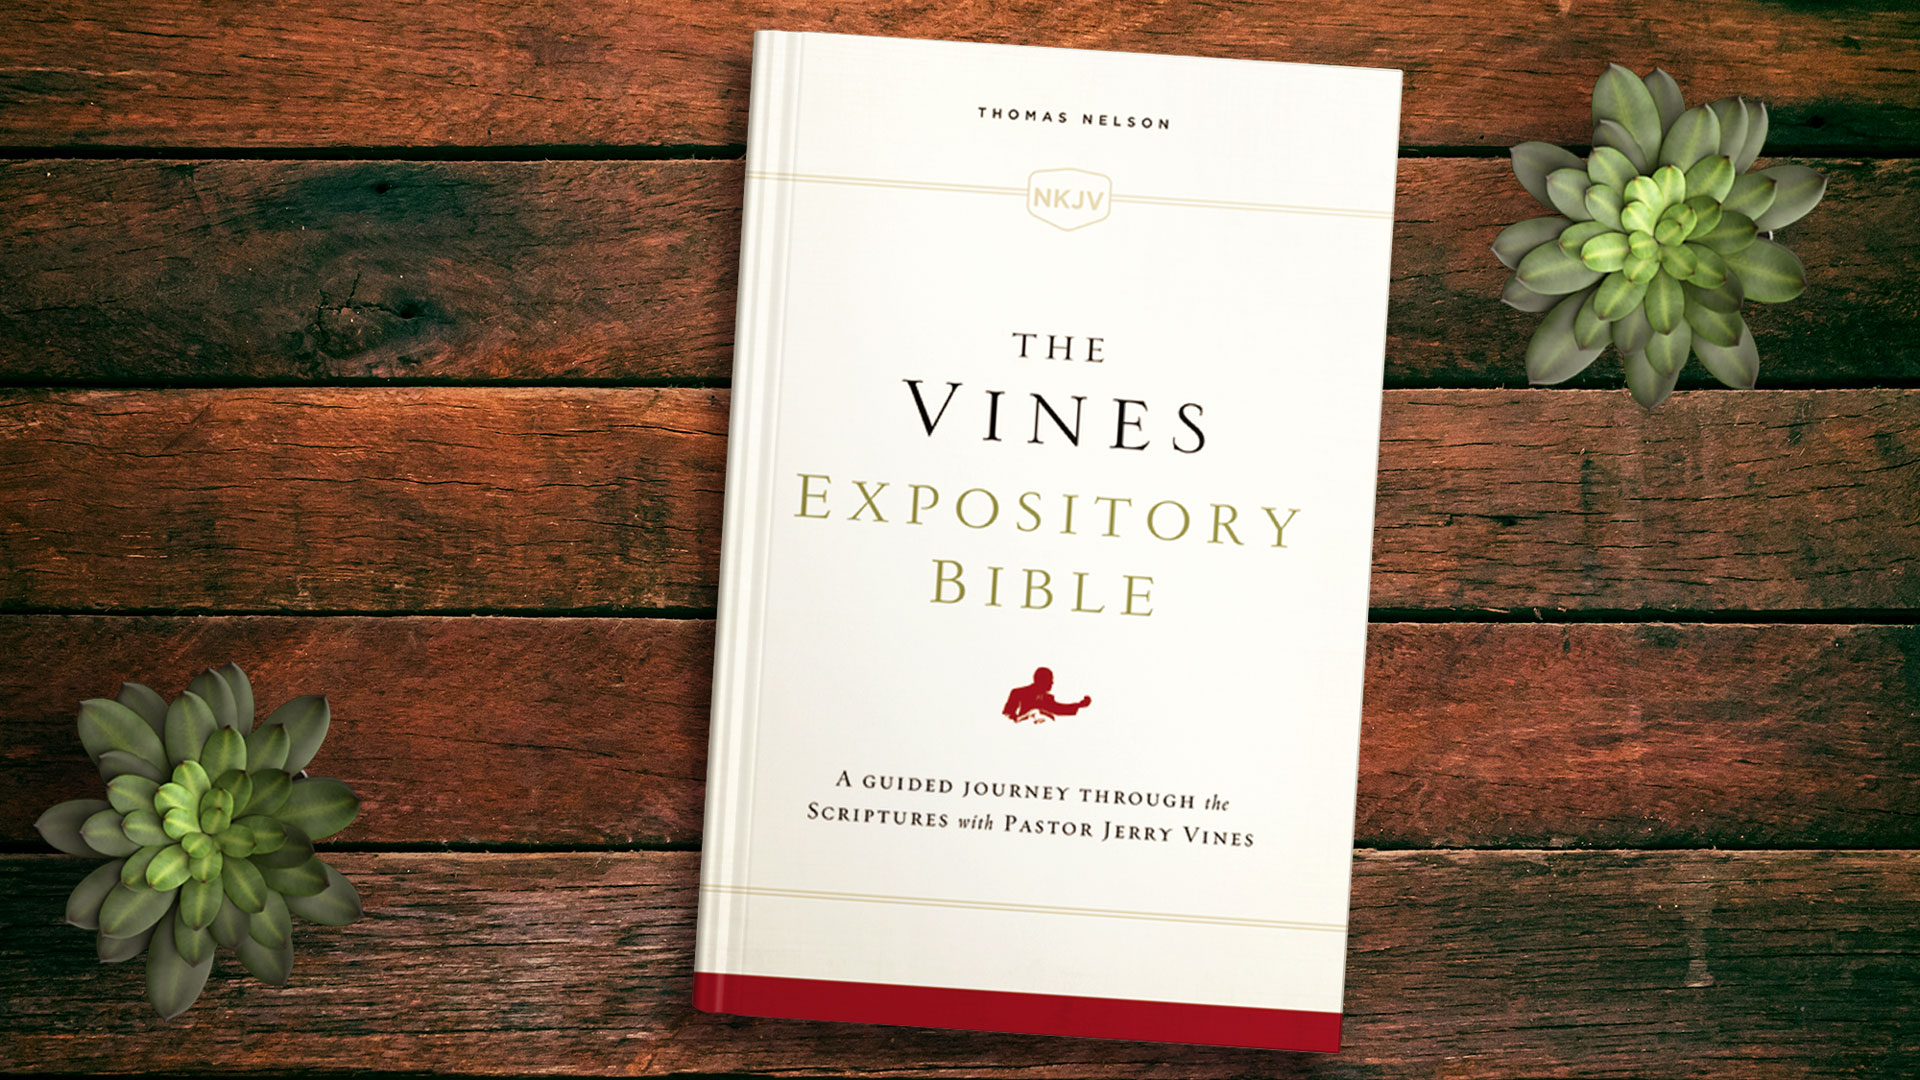 NKJV Vines Expository Bible